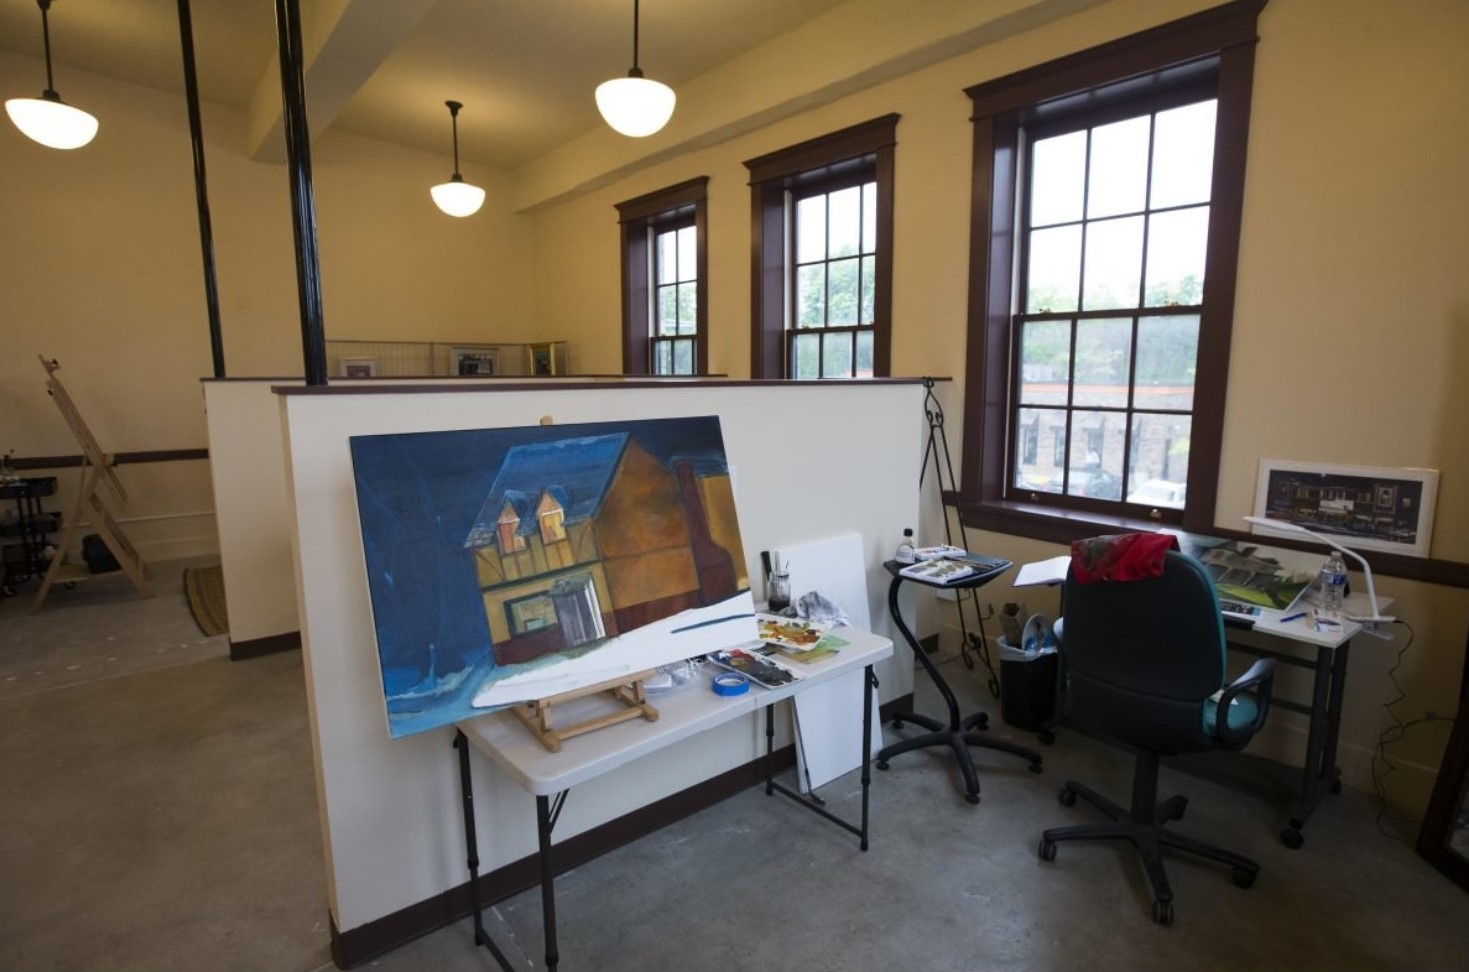 Opening of New Co-Working Space Has Lansdowne One Step Closer to Being an Artist's Village